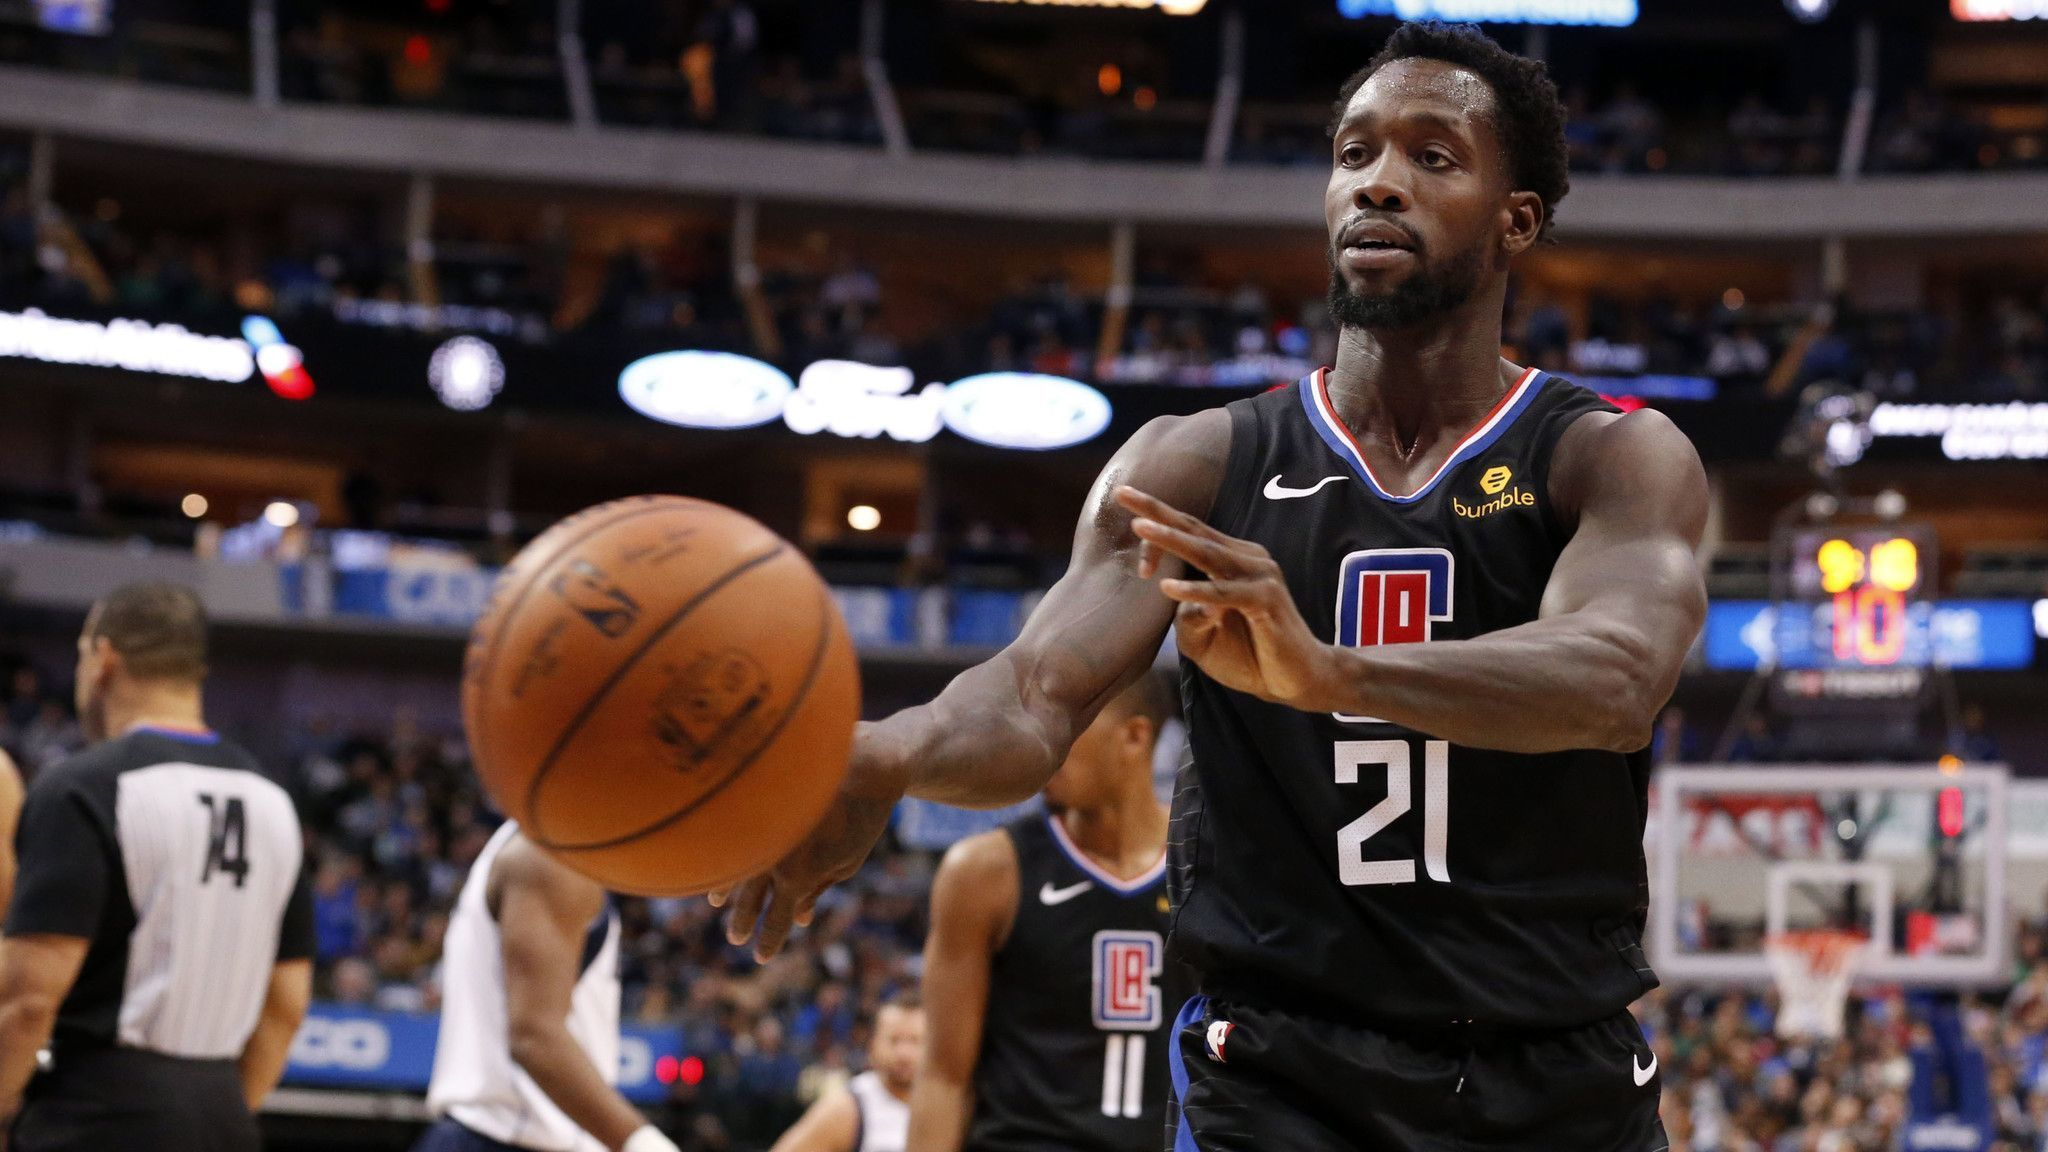 Mavericks suspend fan who insulted Clippers' Patrick Beverley